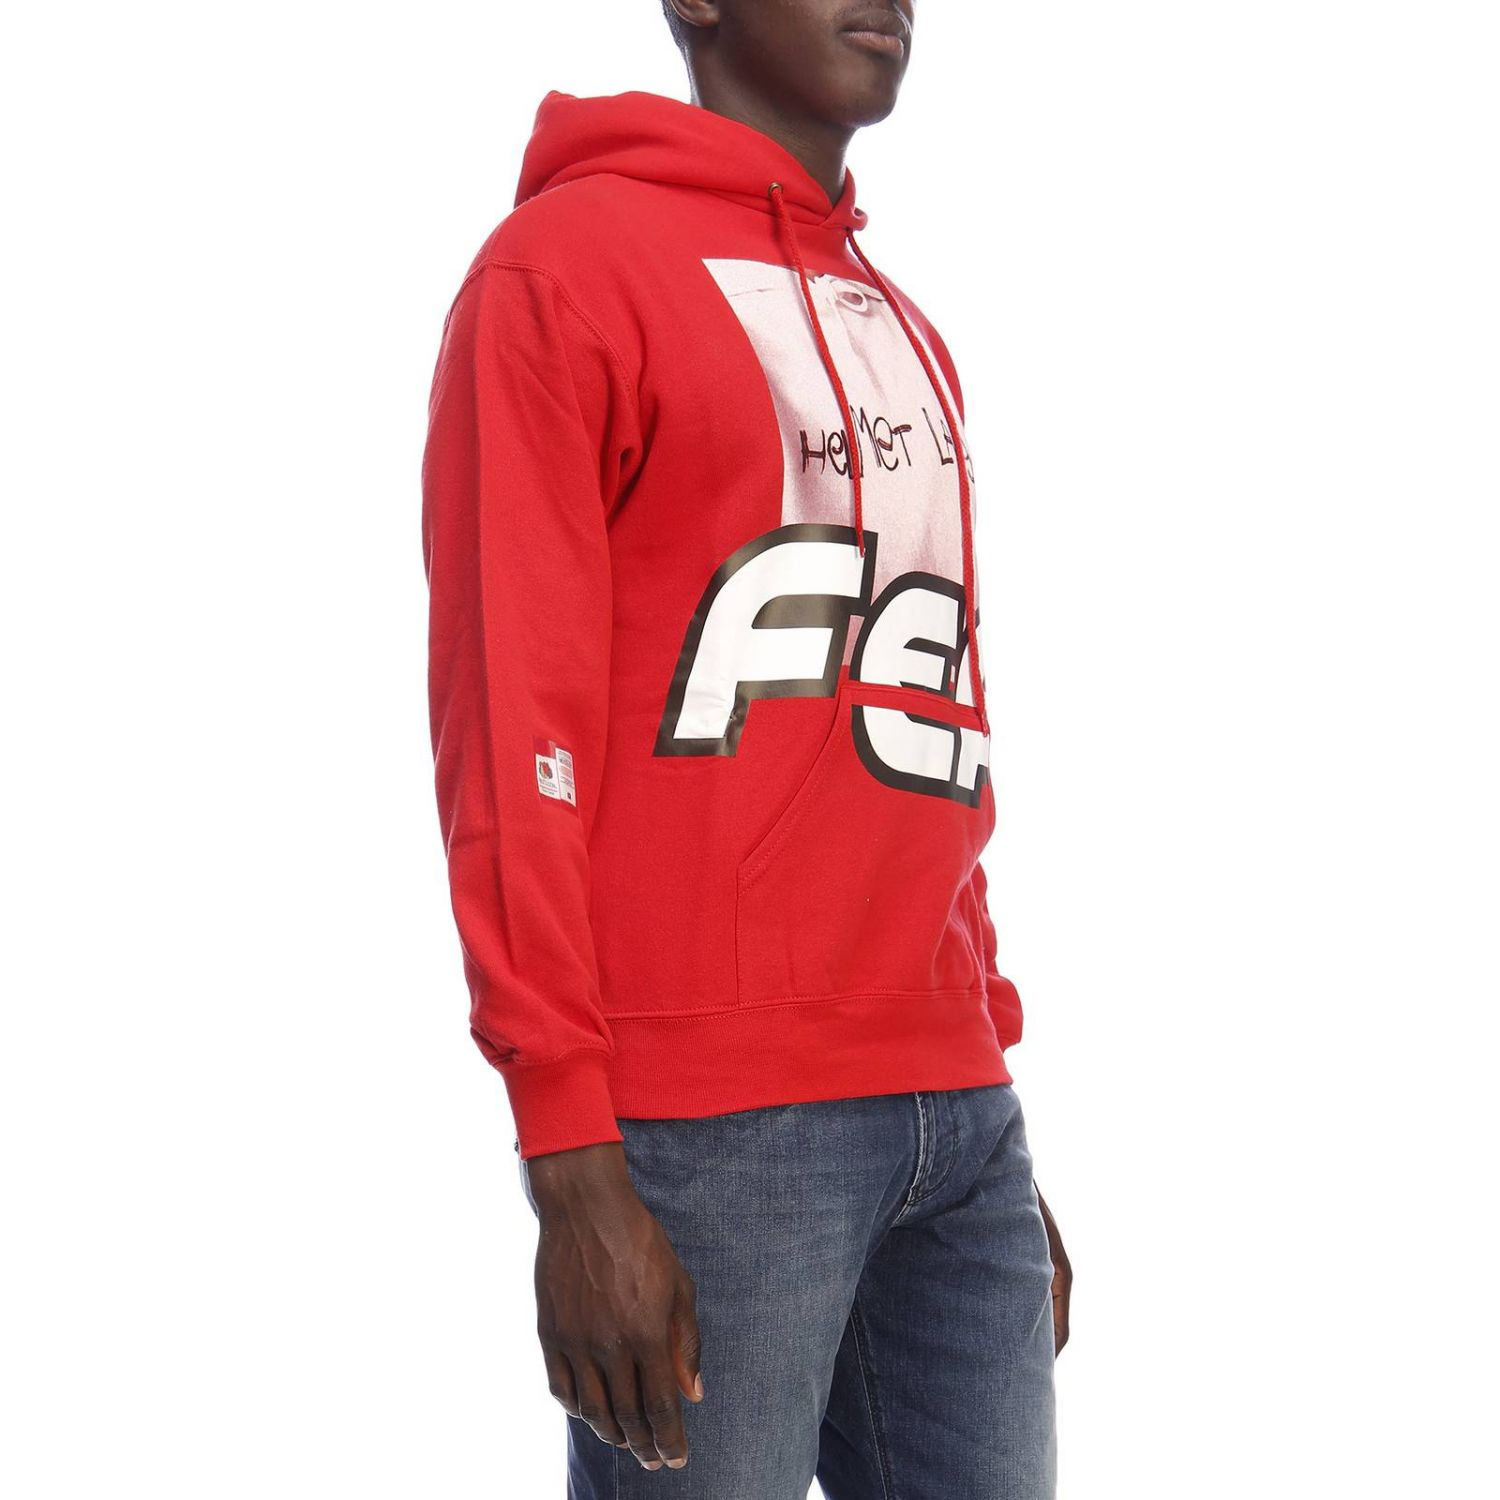 Jumper men Sold Out red 2